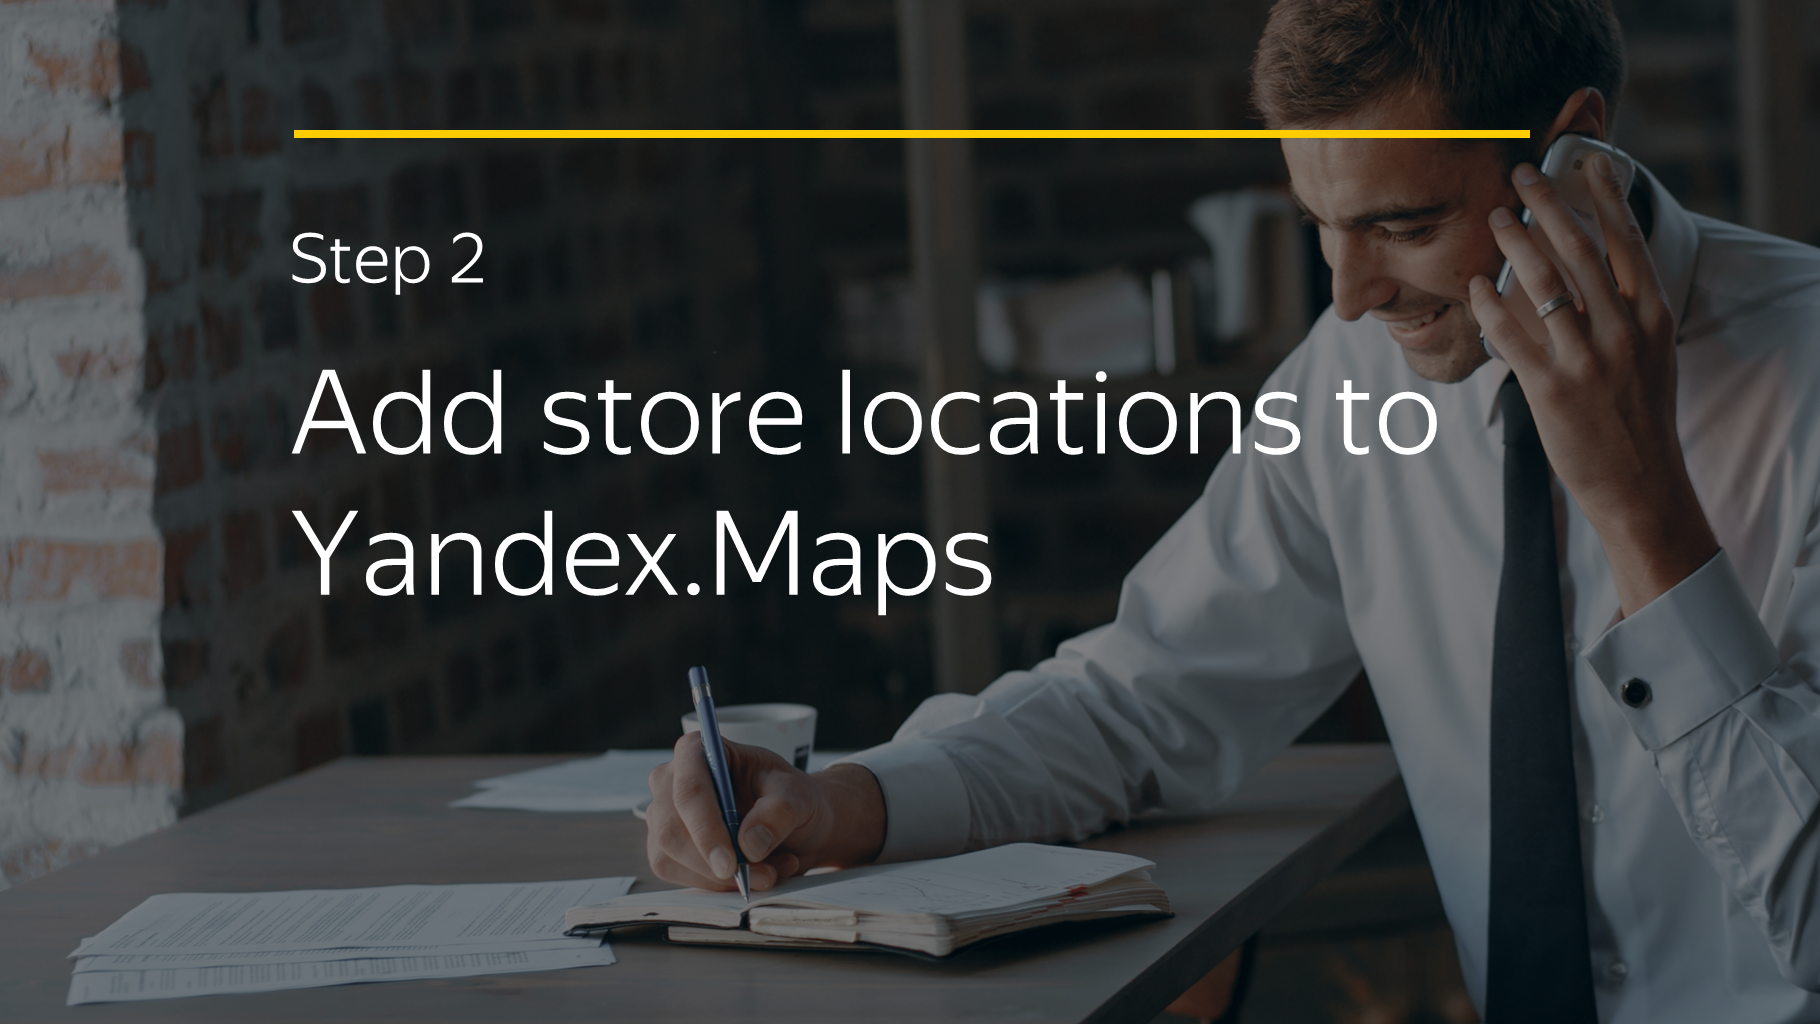 Step 2 Add store locations to Yandex.Maps